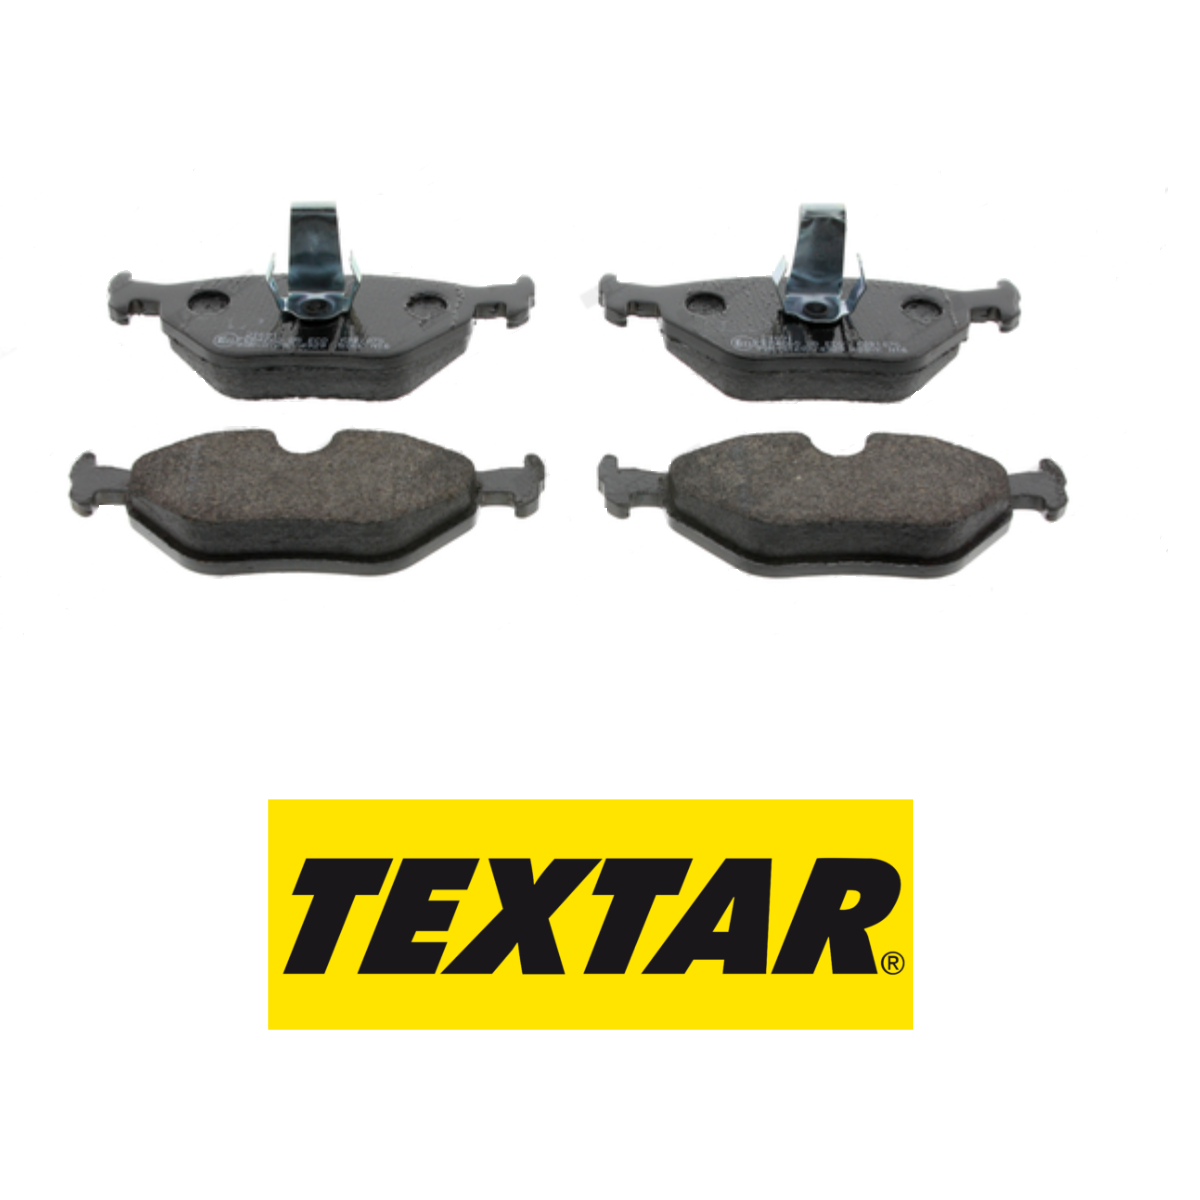 REAR BRAKE PADS KIT BMW 5 TEXTAR 2169117305